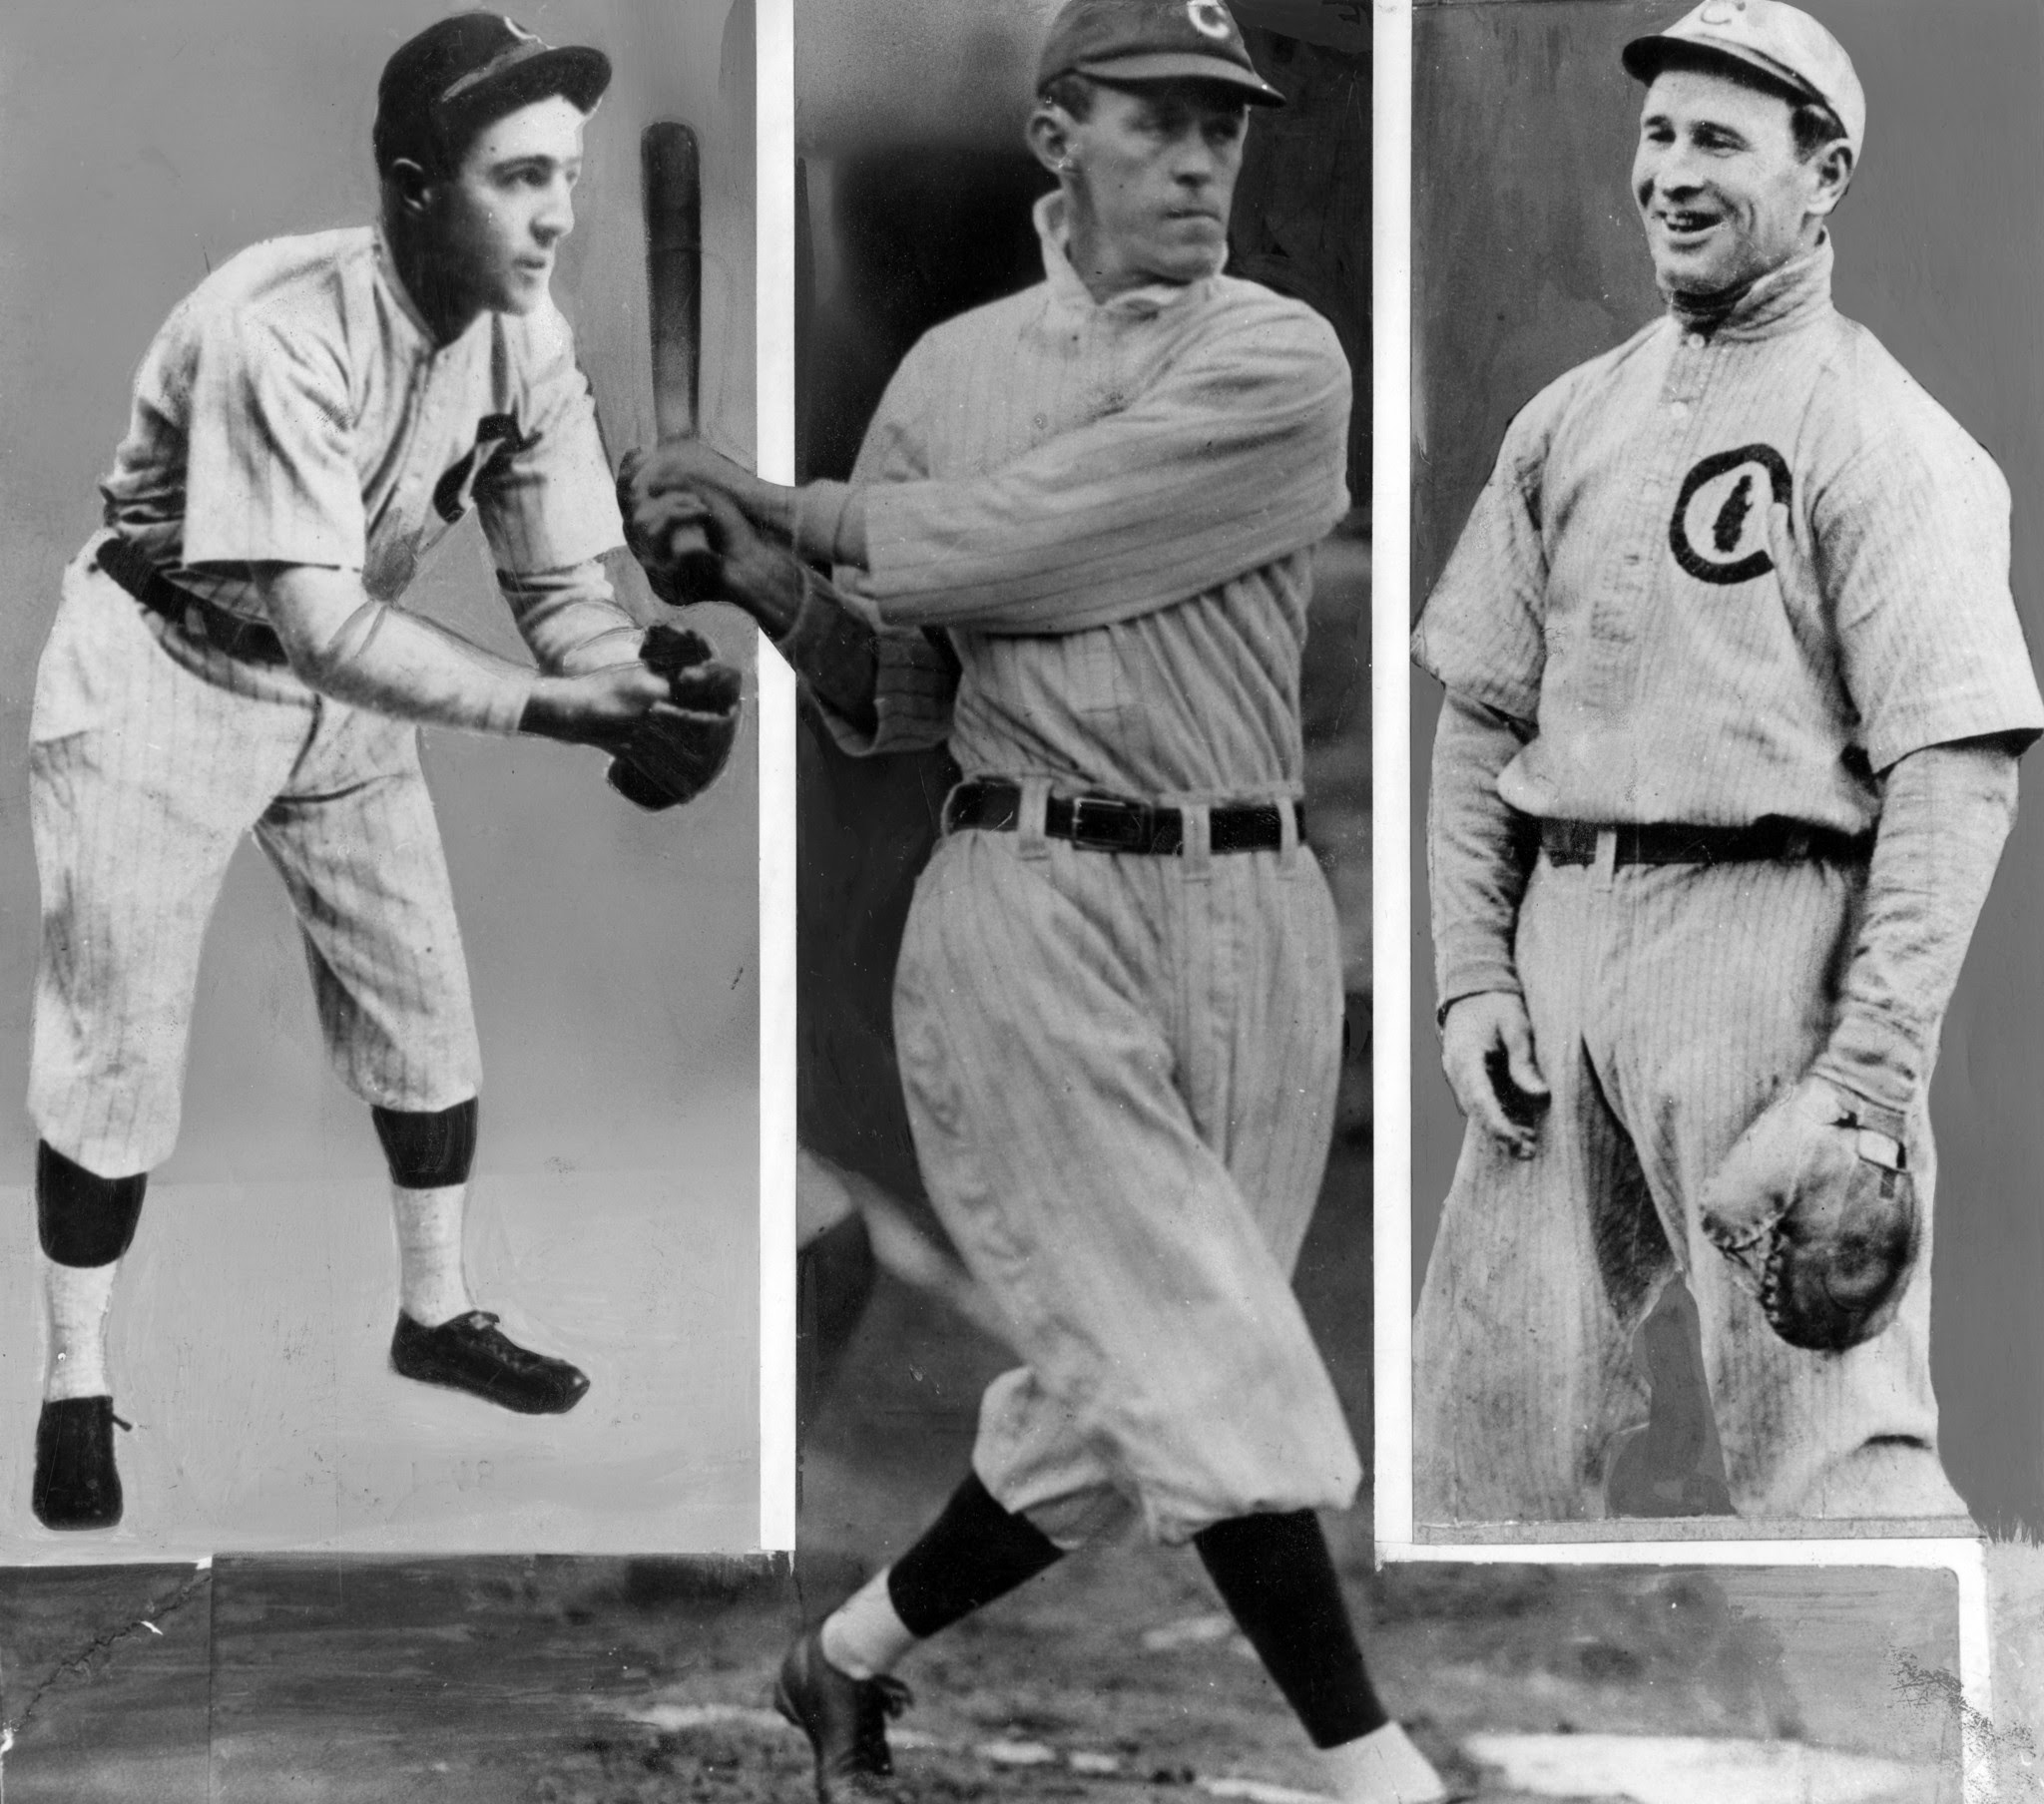 Joe Tinker, Johnny Evers, and Frank Chance of the Chicago Cubs